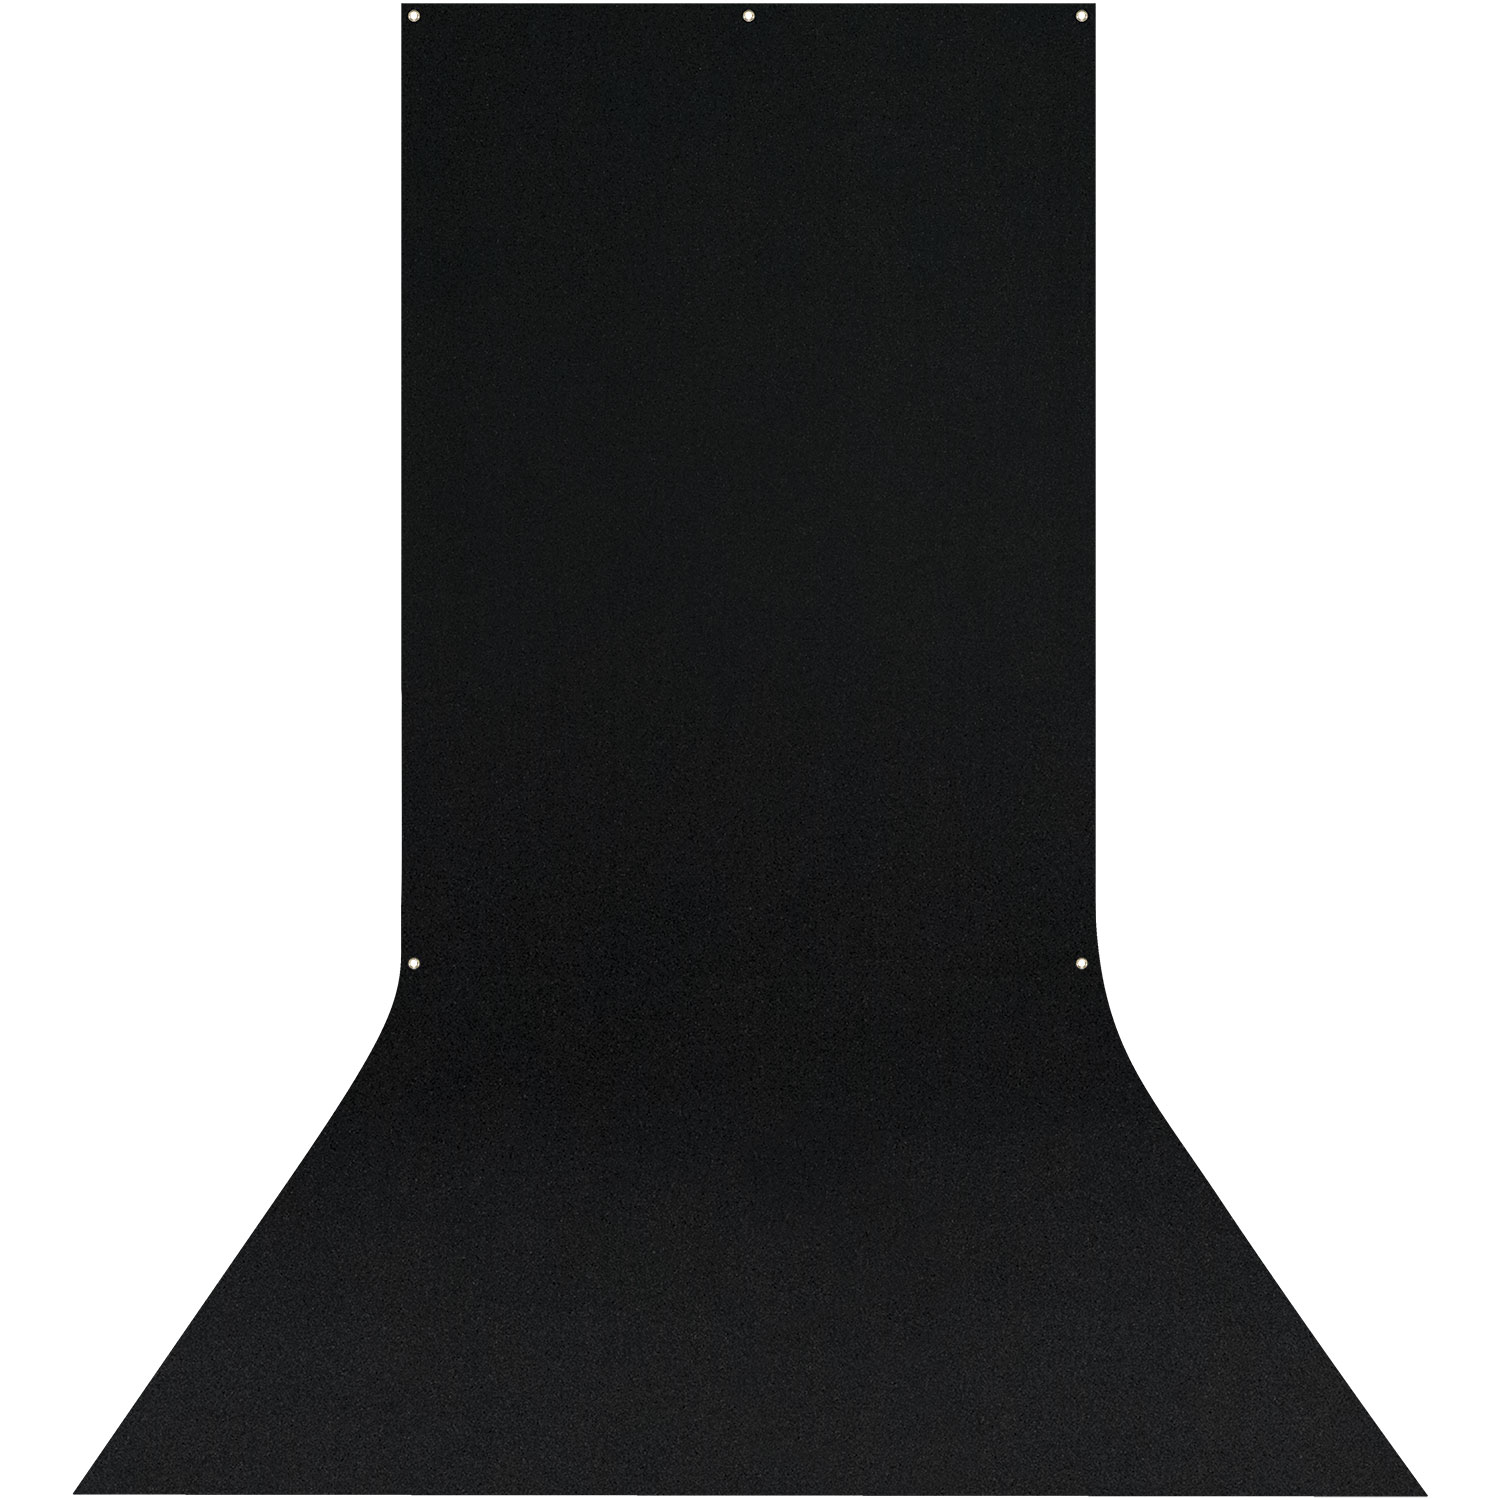 X-Drop Wrinkle-Resistant Backdrop - Rich Black Sweep (5' x 12')